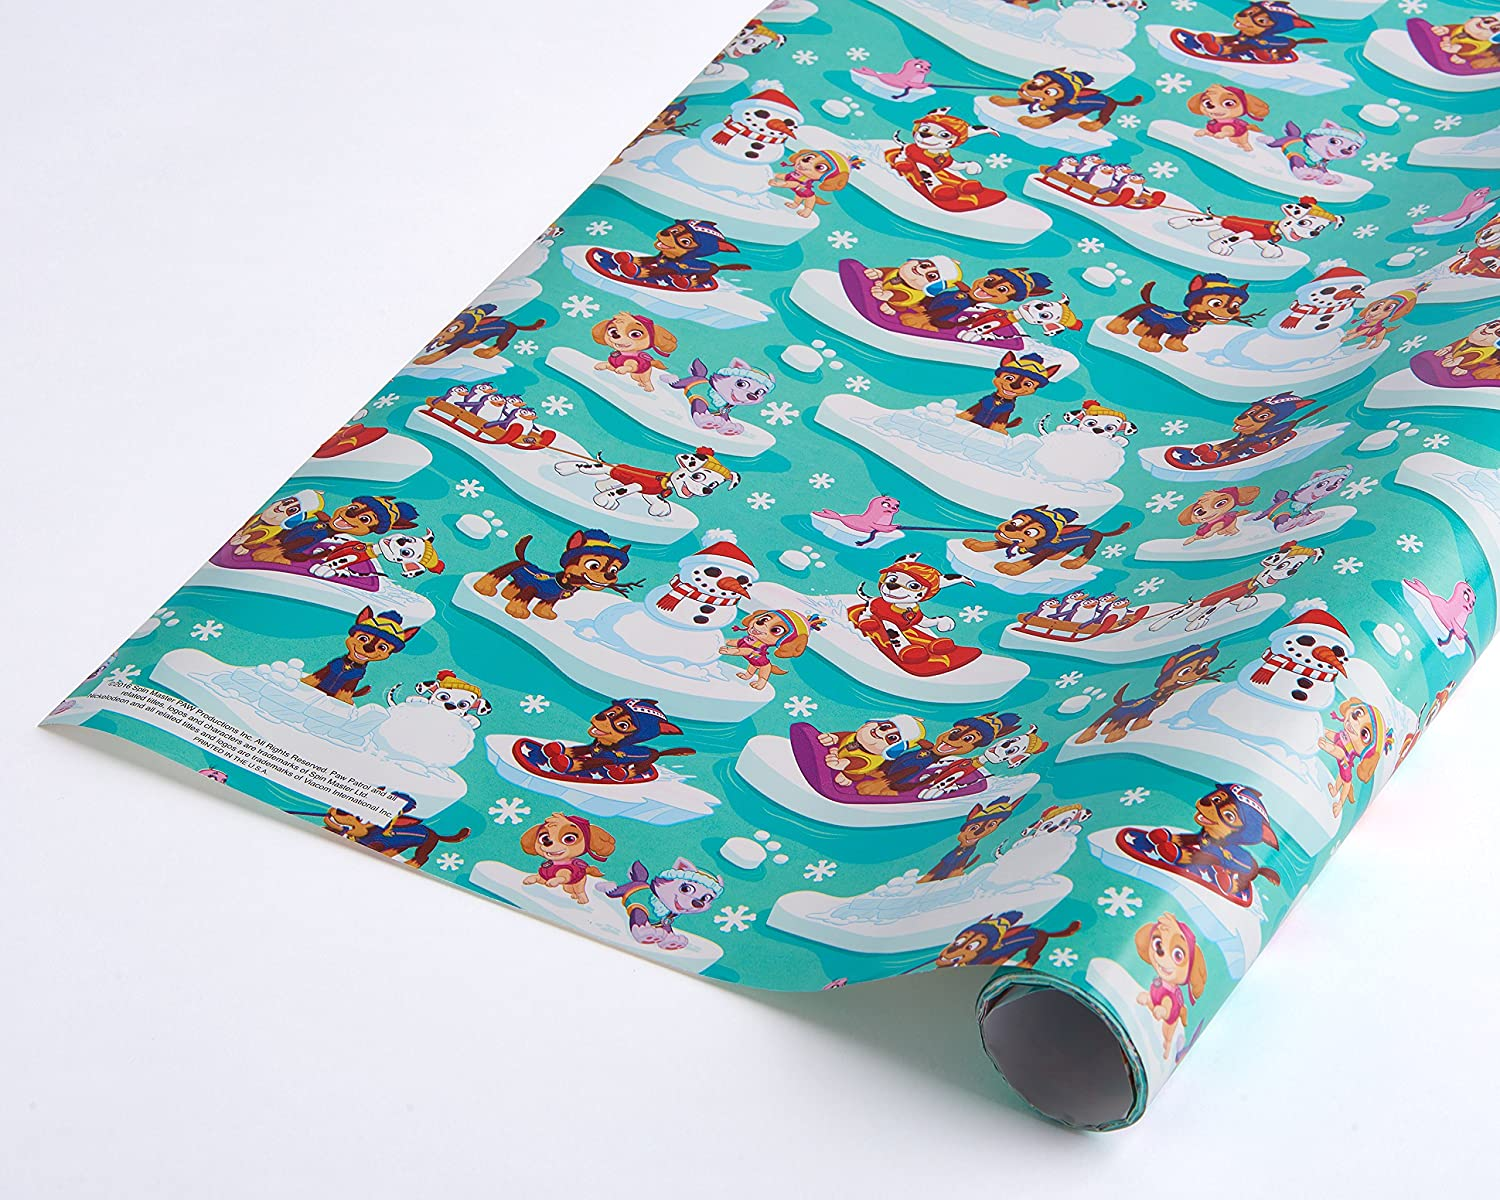 Buy American Greetings 5677209 Paw Patrol Christmas Wrapping Paper